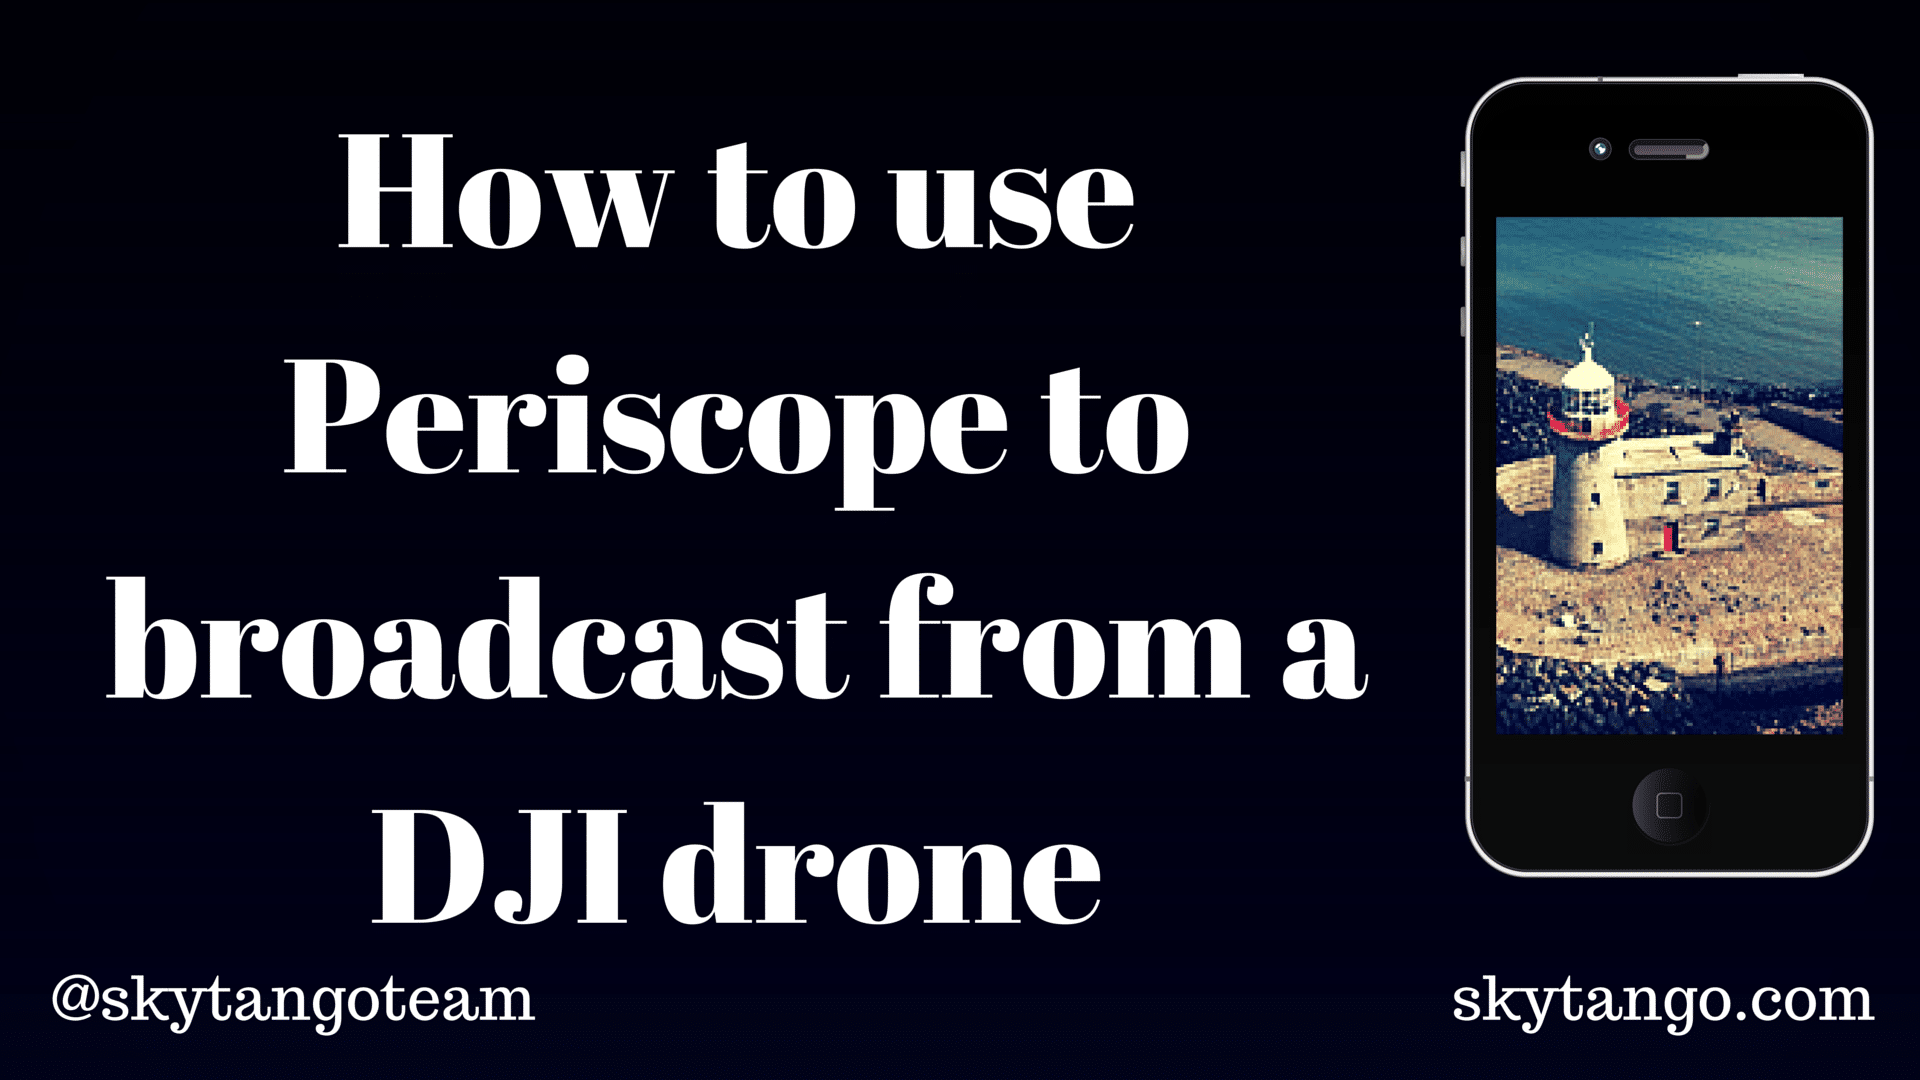 How To Use Periscope To Broadcast From A DJI Drone